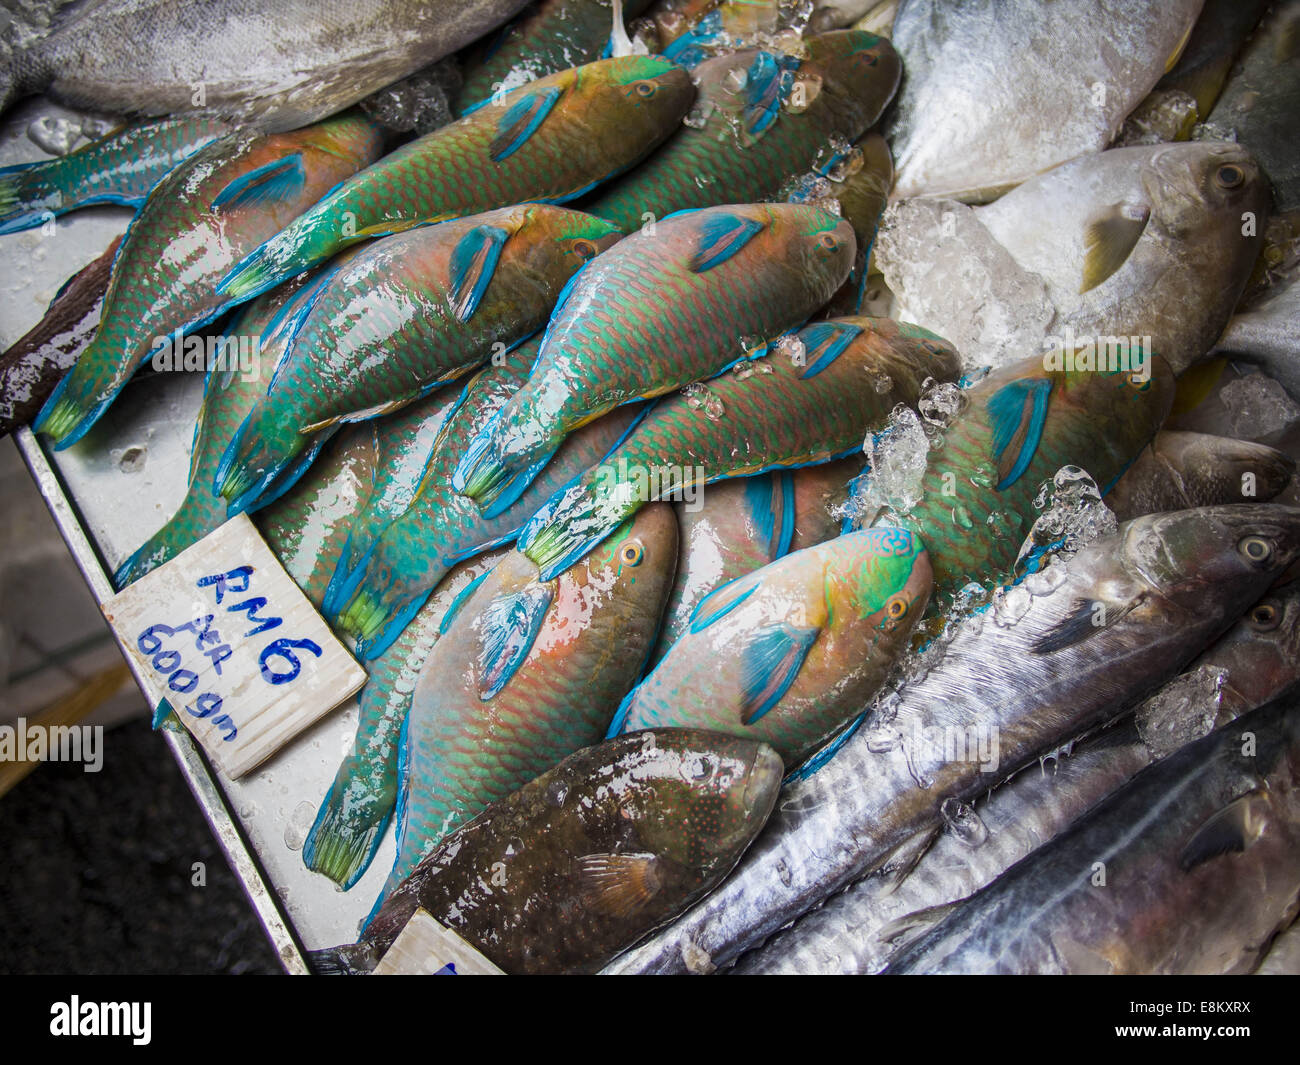 George town penang malaysia 6th oct 2014 parrot fish for Parrot fish for sale